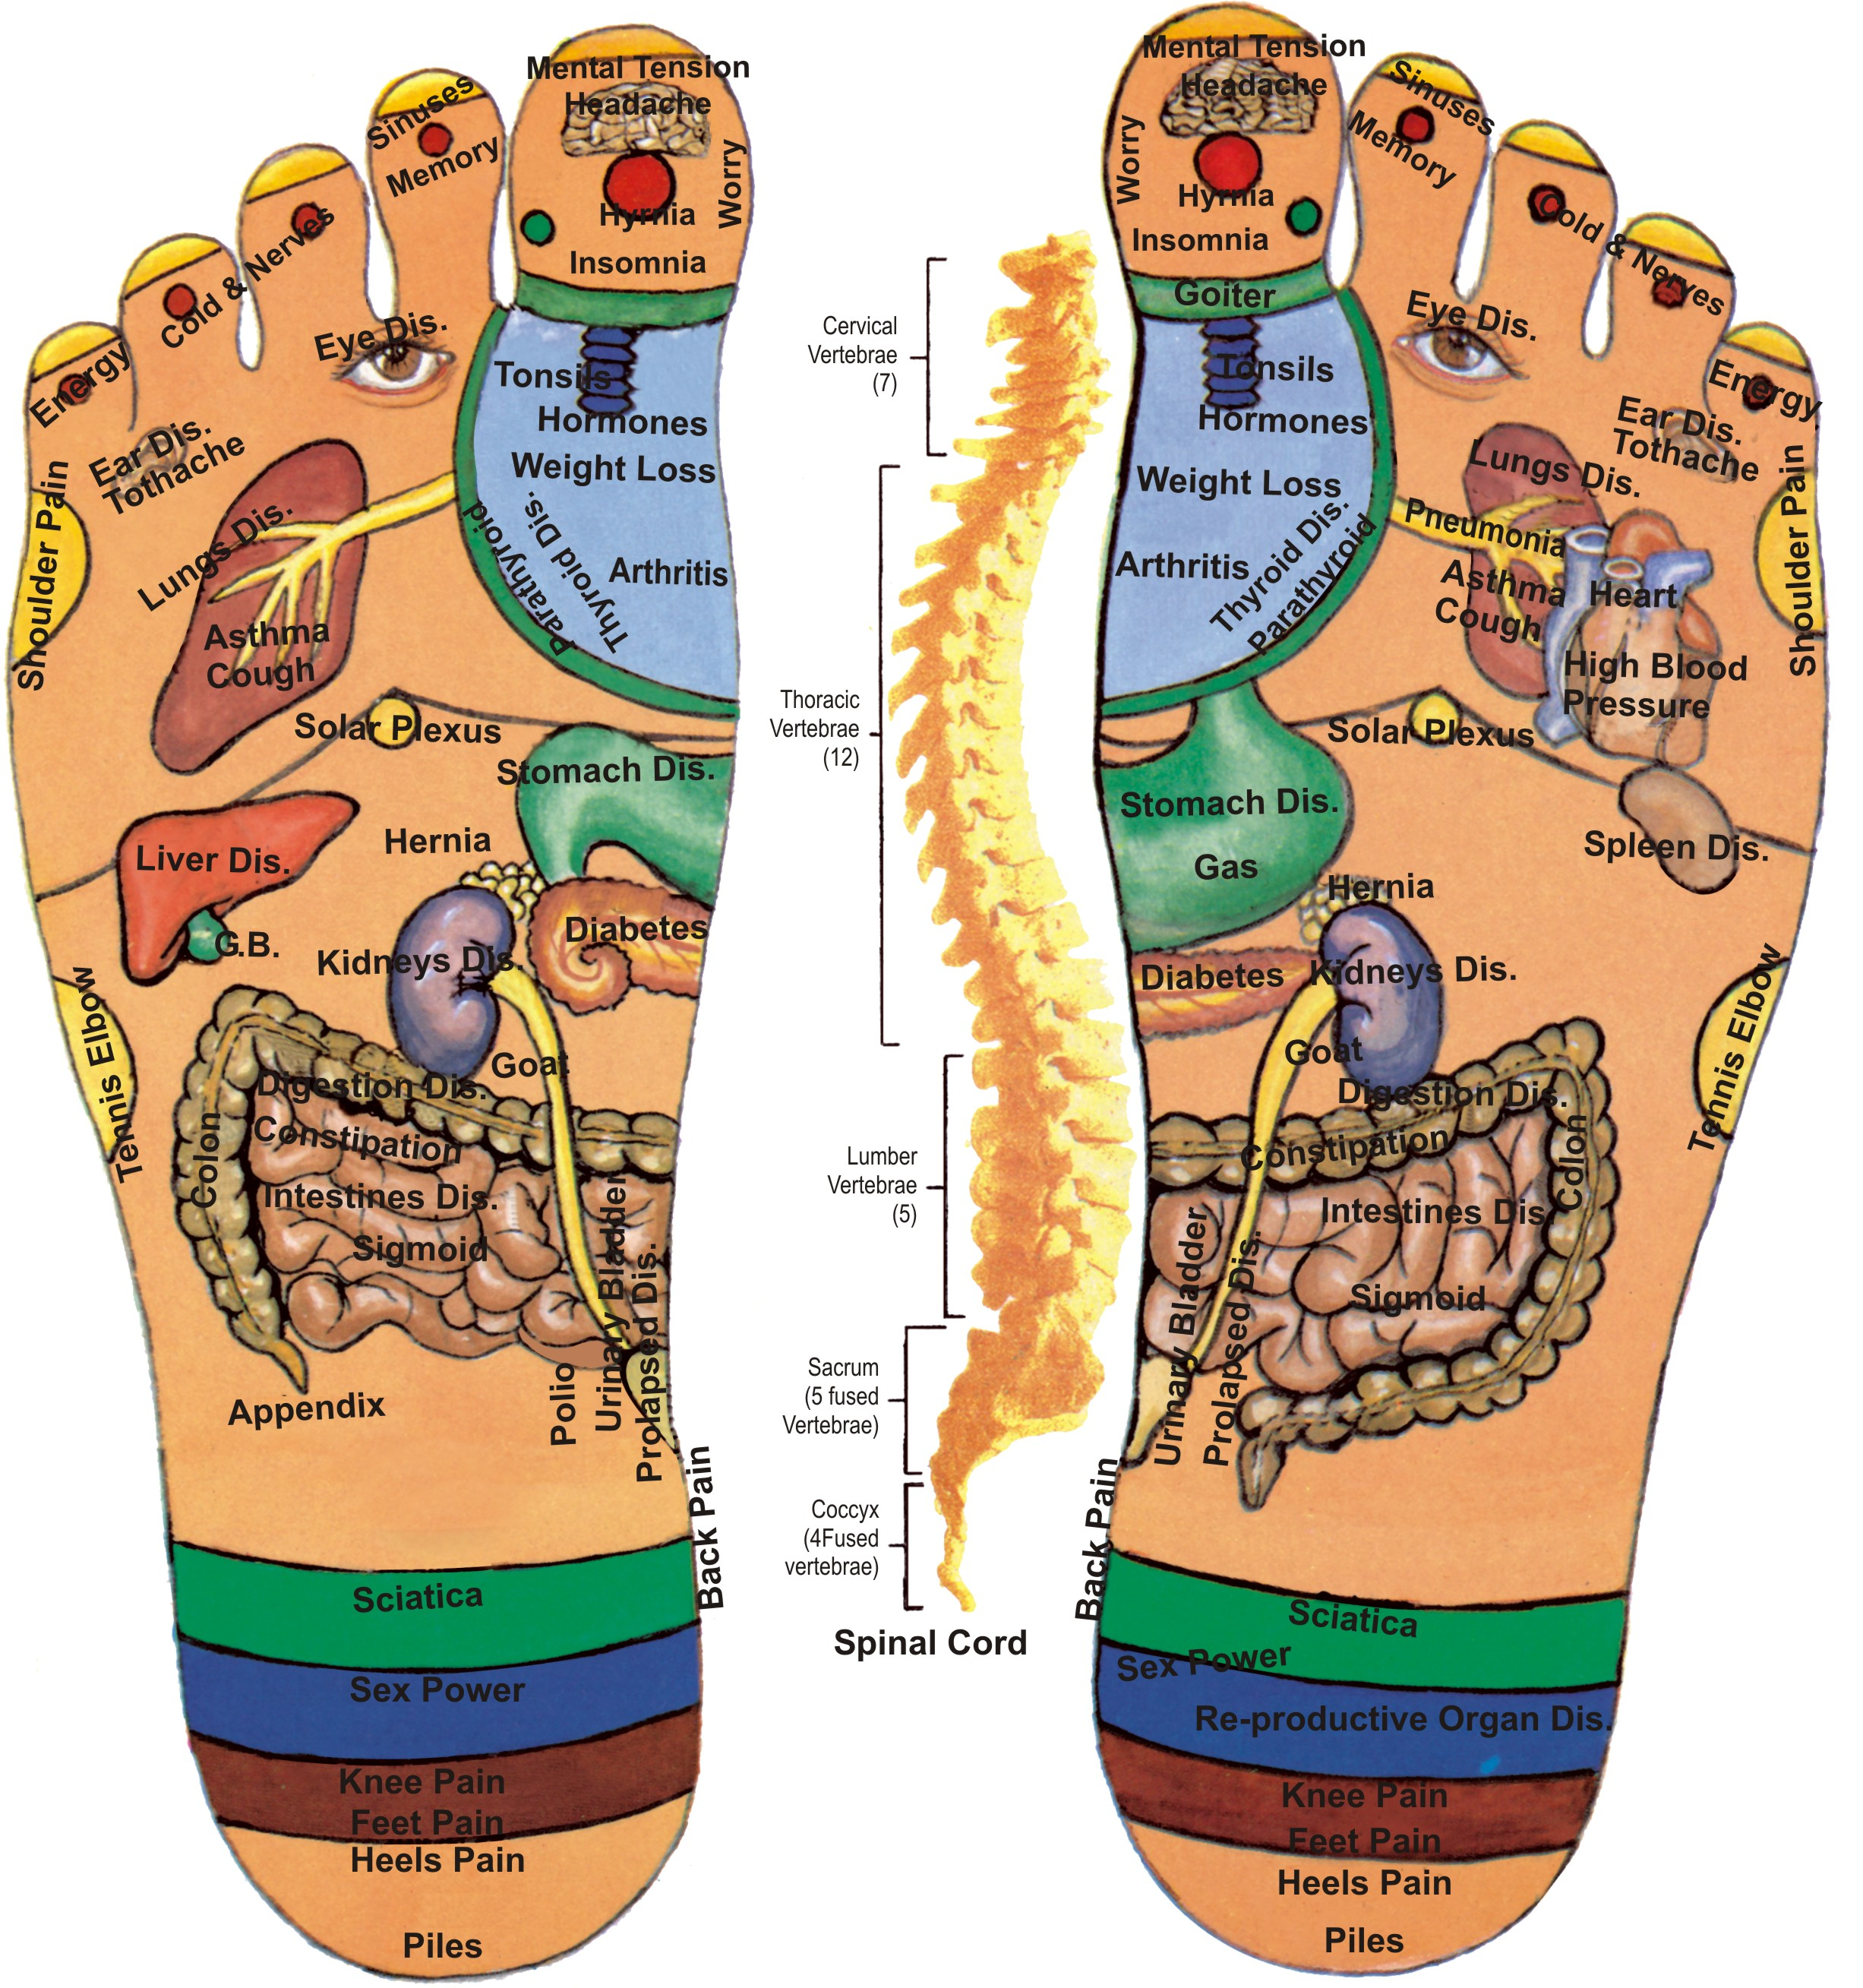 Acupressure points in Foot